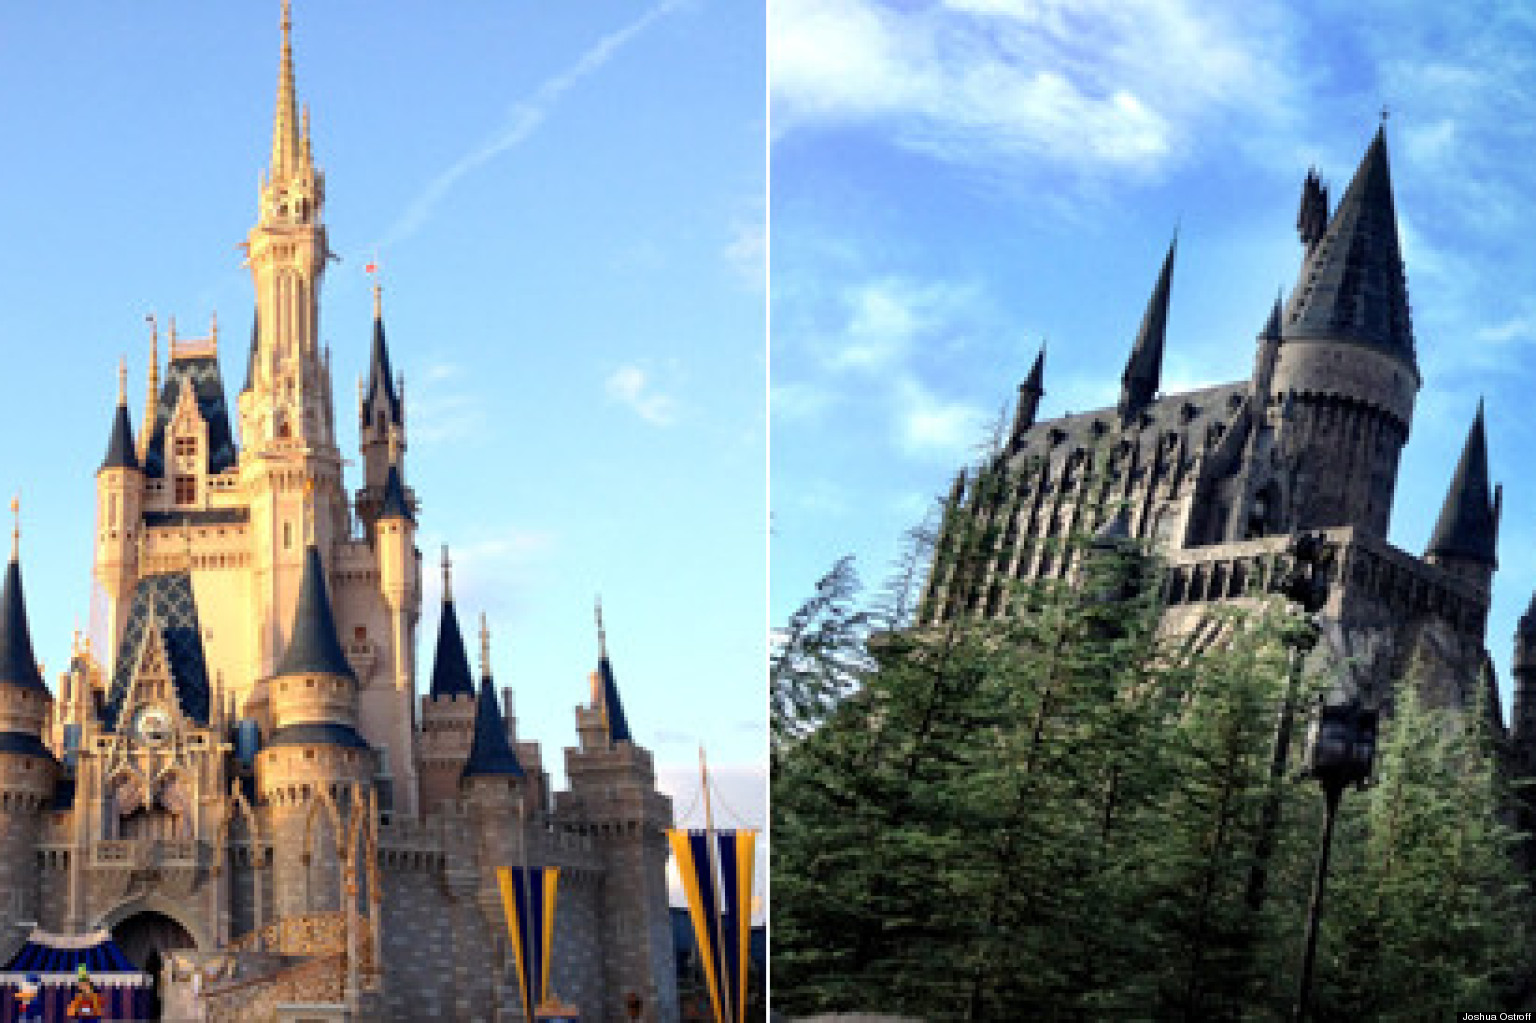 Where should I go Walt Disney World or Universal Orlando Resort?